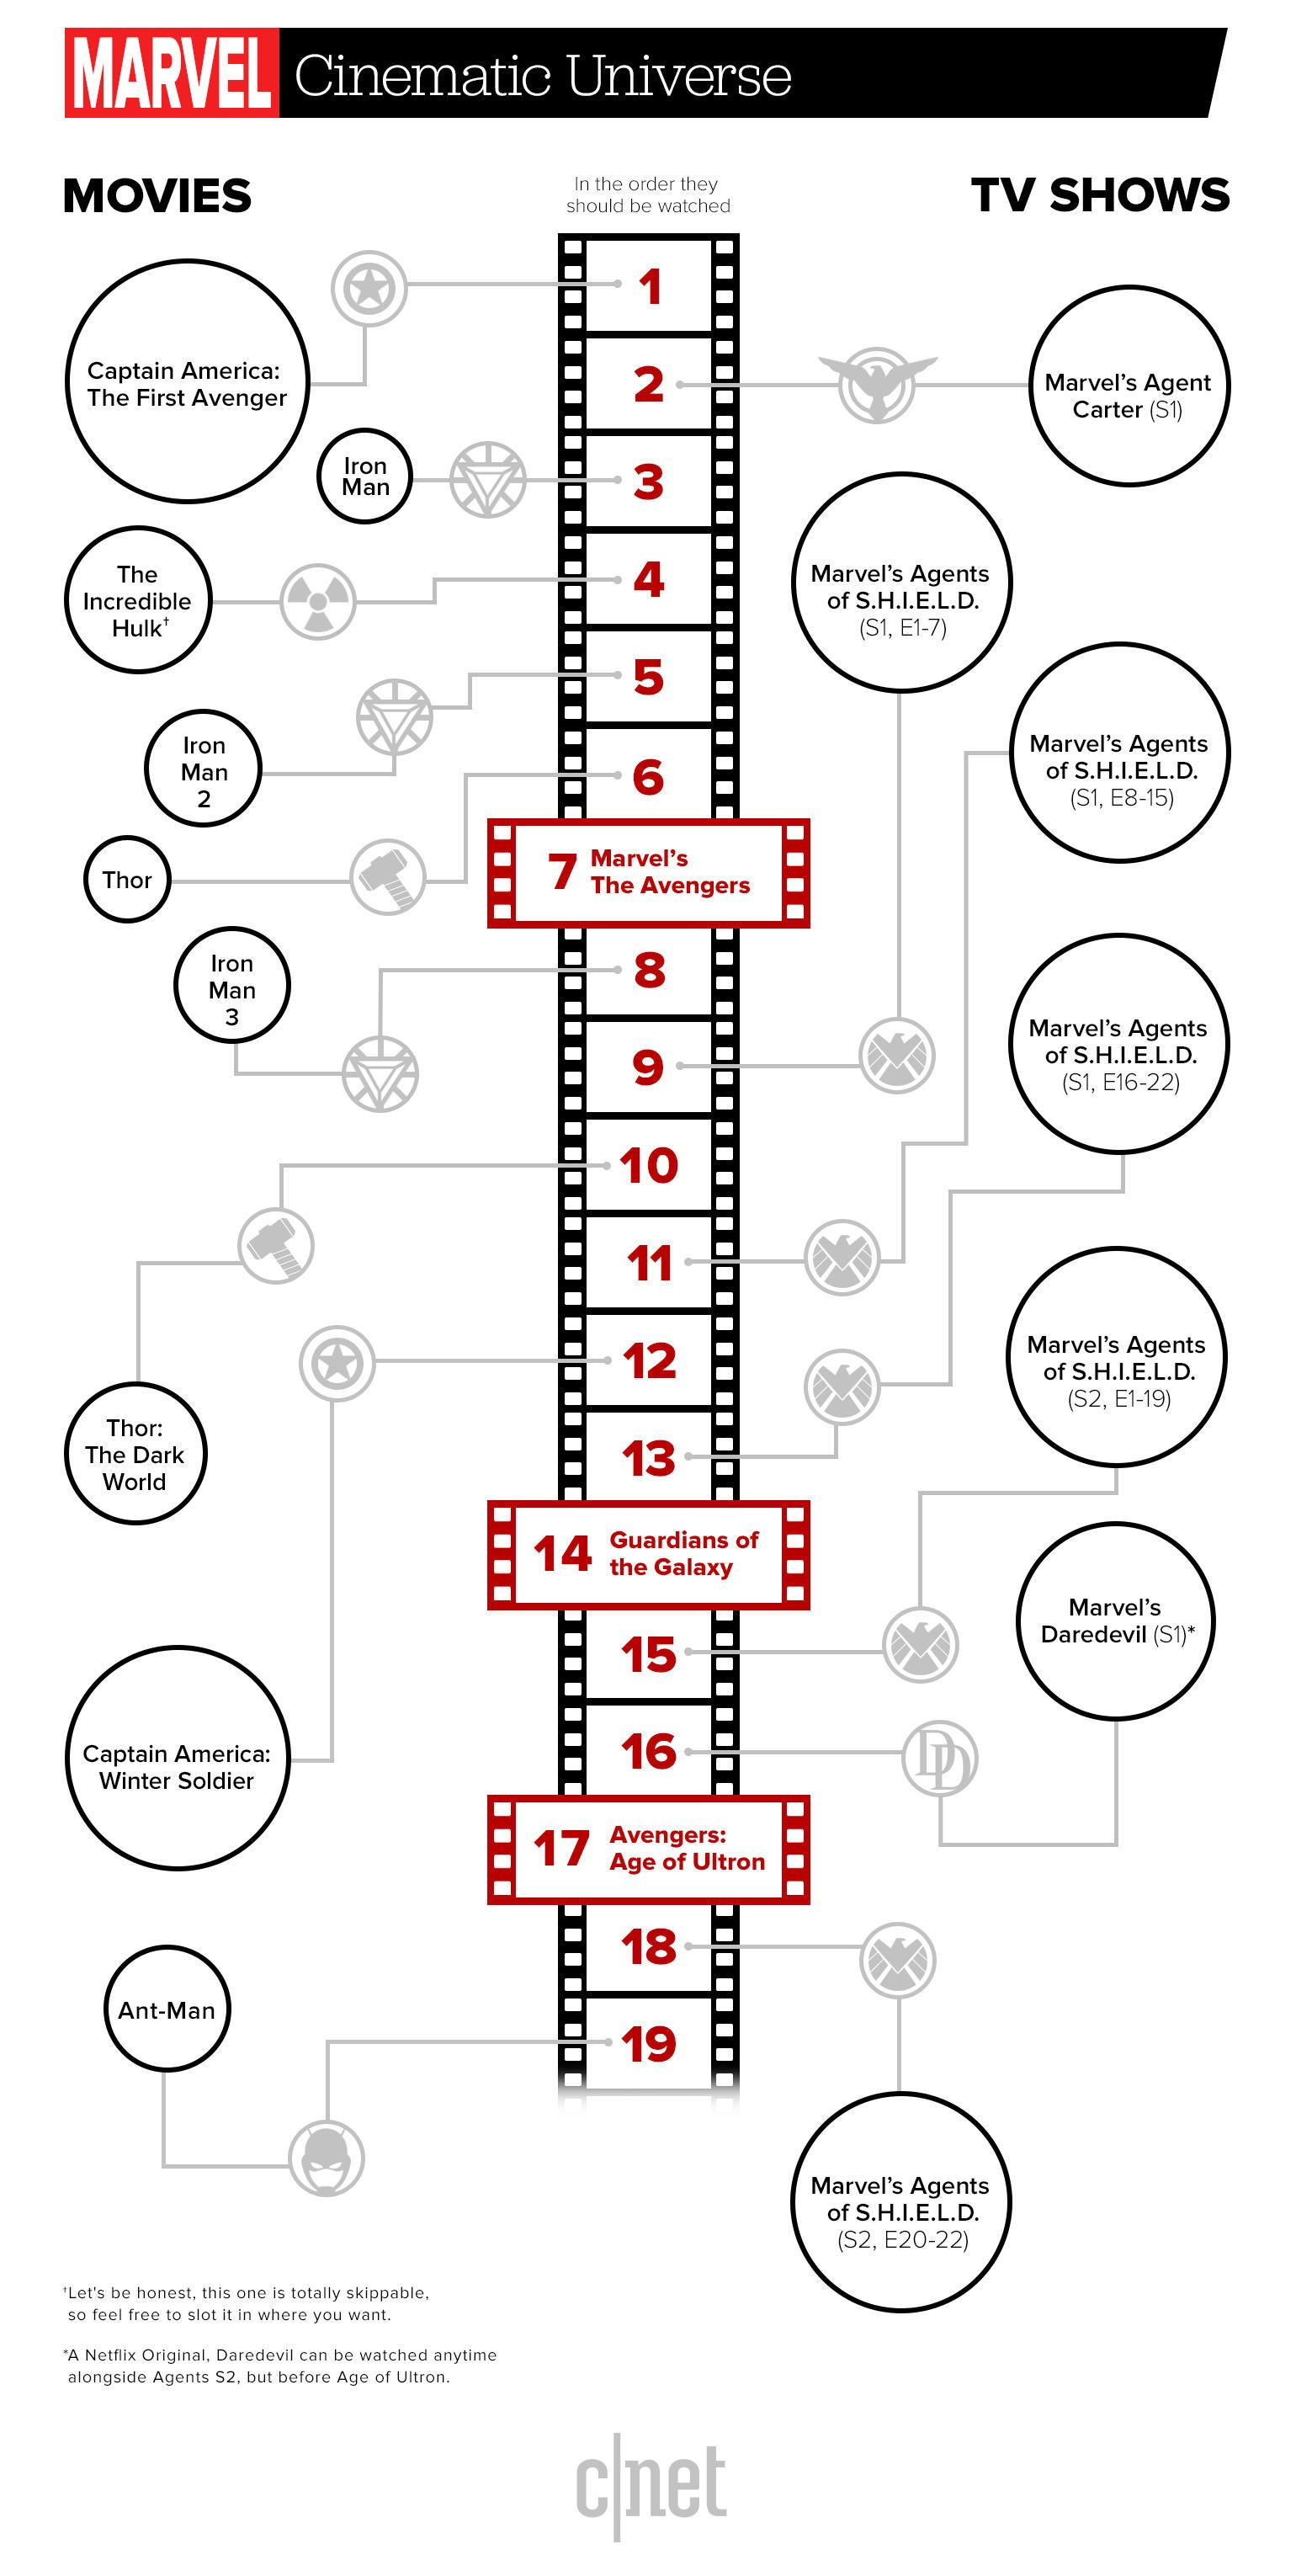 Marvel timeline: How to watch every Marvel movie and show in order